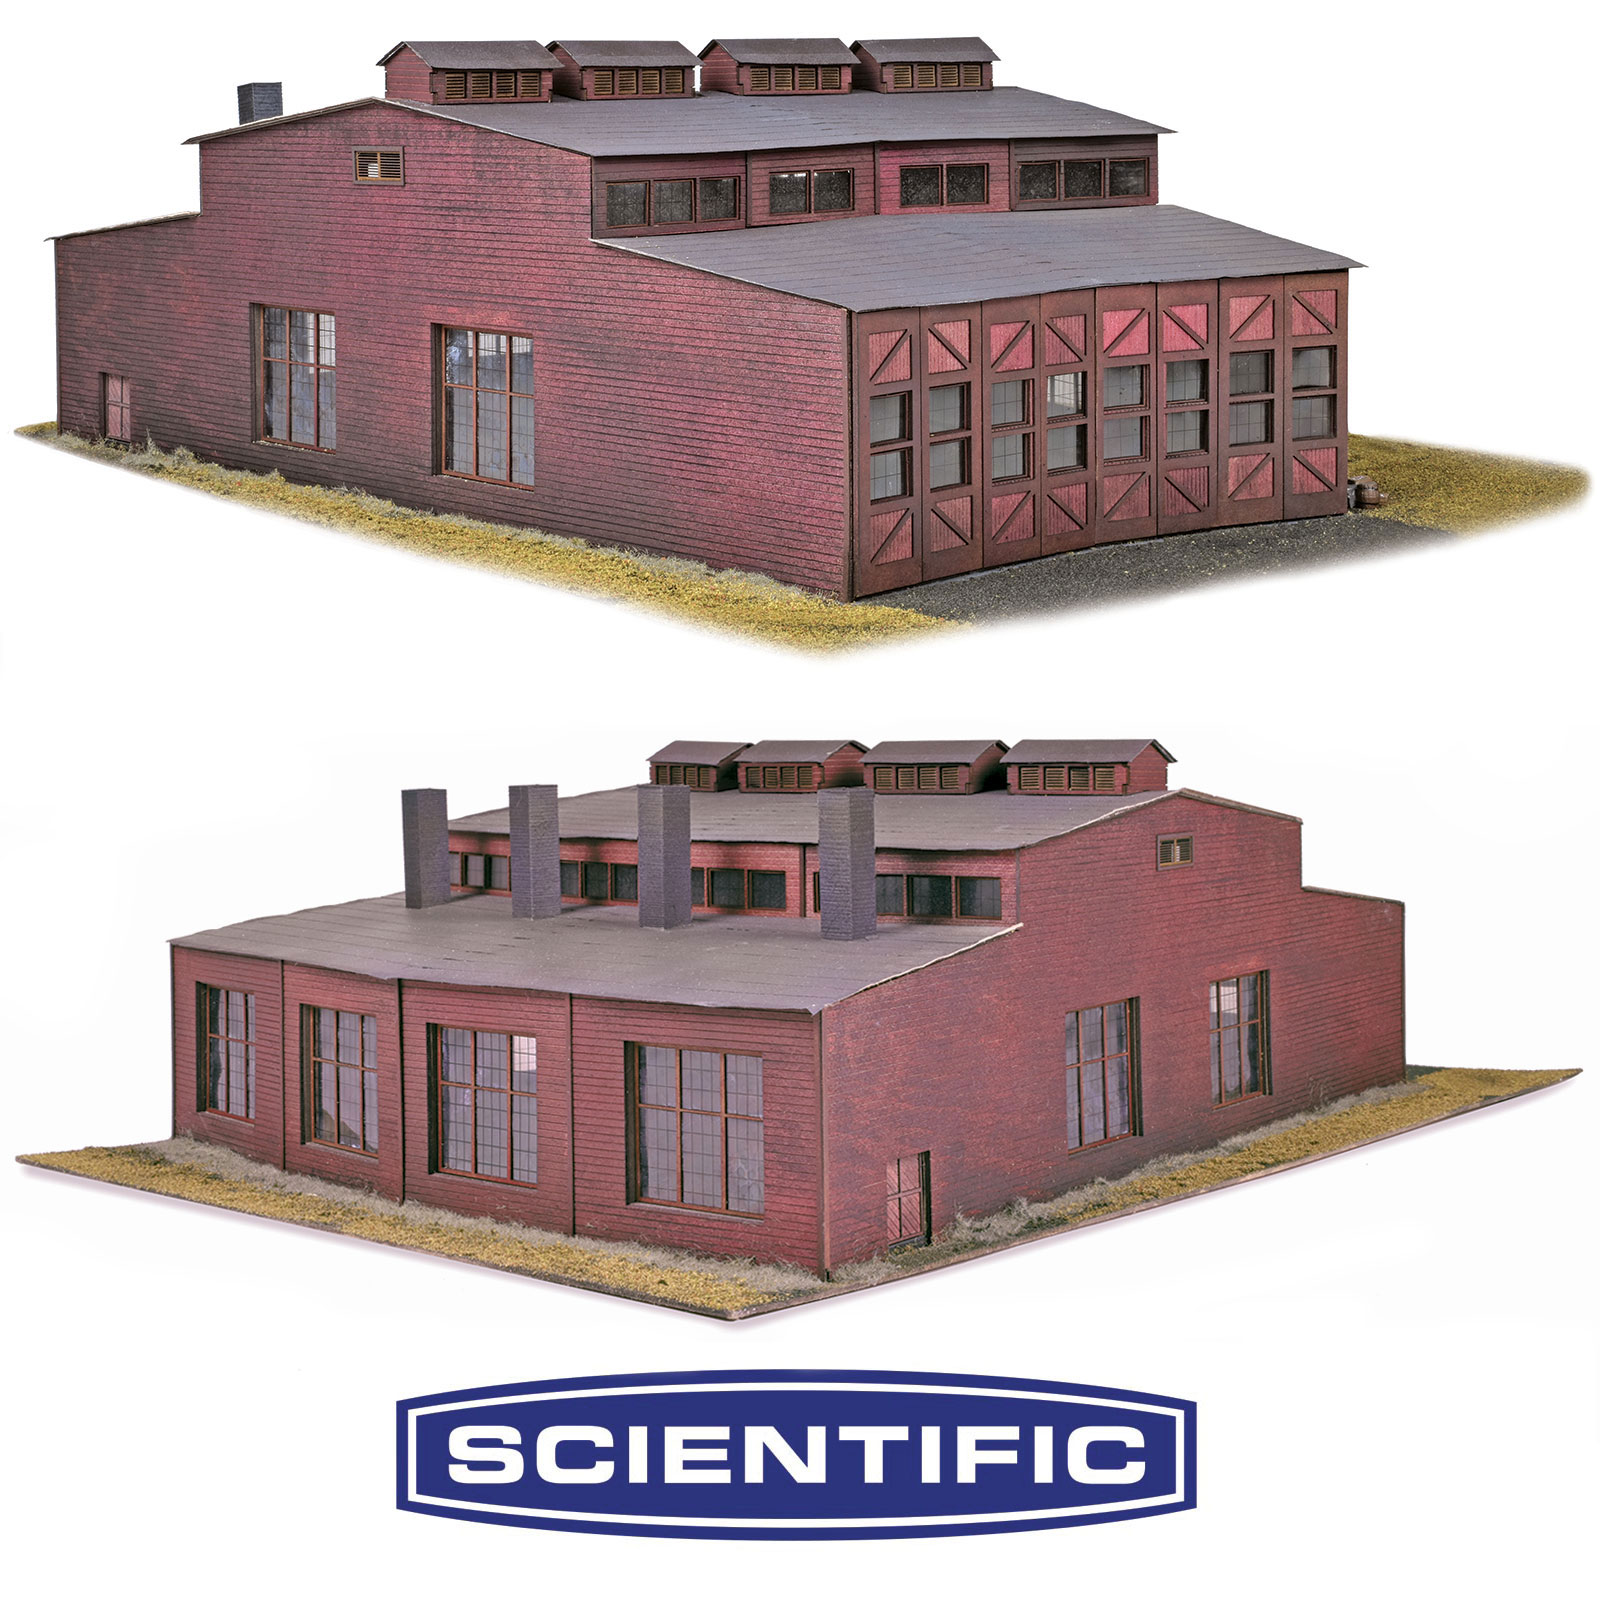 Ked Roundhouse Kit, HO Scale, By Scientific on railroad roundhouses missouri, lionel train track layout plans, railroad stations, railroad tracks, 4x8 ho track plans, railroad yards in chicago, on30 track plans, railroad water tower plans, railroad roundhouses chicago, railroad structure plans, walthers track plans, ho scale turntable plans, railroad shops, railroad roundhouses in ohio, railroad yard design, railroad turntable, railroad engine shed plans, o gauge turntable plans,